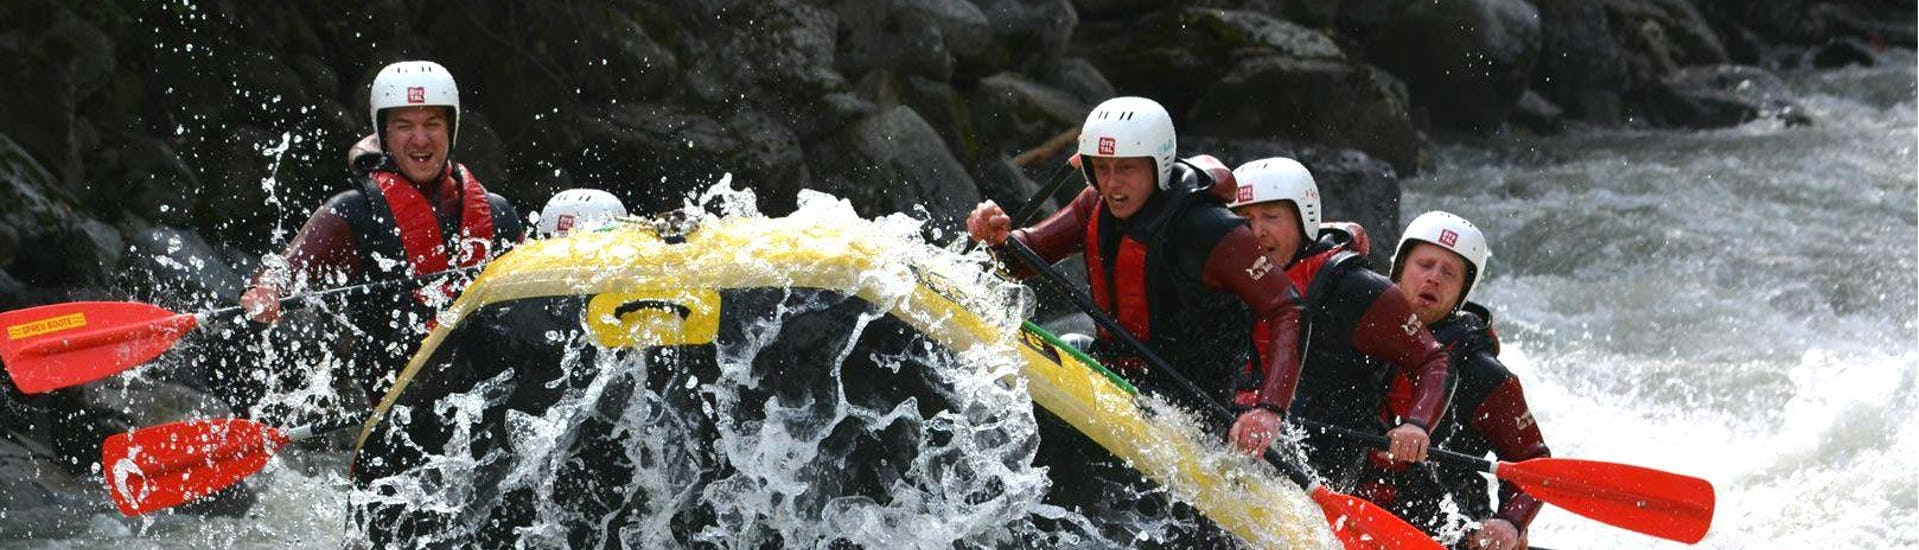 "During Rafting ""Extreme"" - Ötztaler Ache with CanKick Ötztal, a group of young men is facing a grade V rapid on Ötztaler Ache."